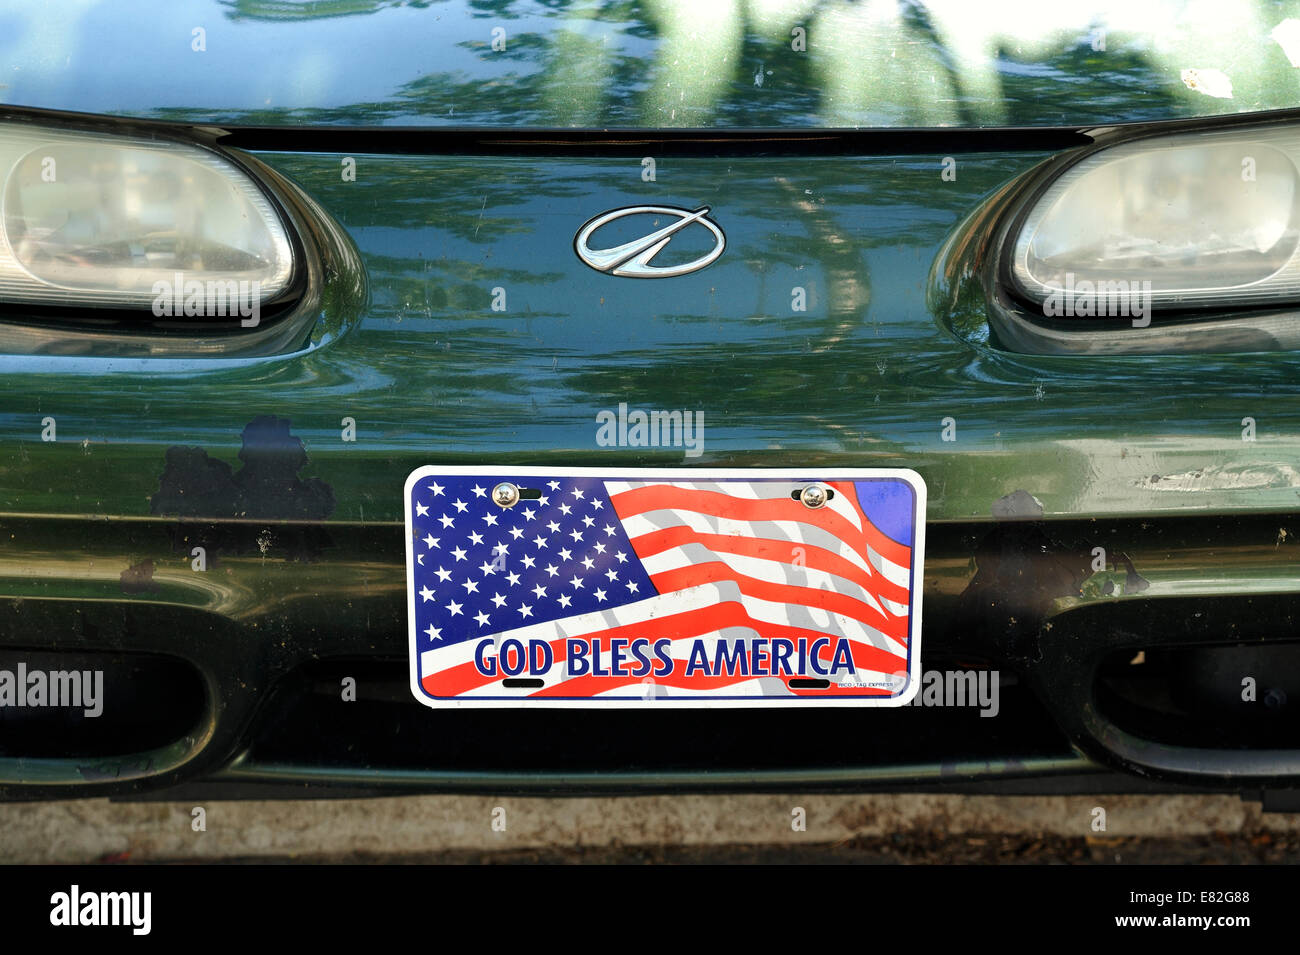 Atlanta Flag Stockfotos & Atlanta Flag Bilder - Alamy